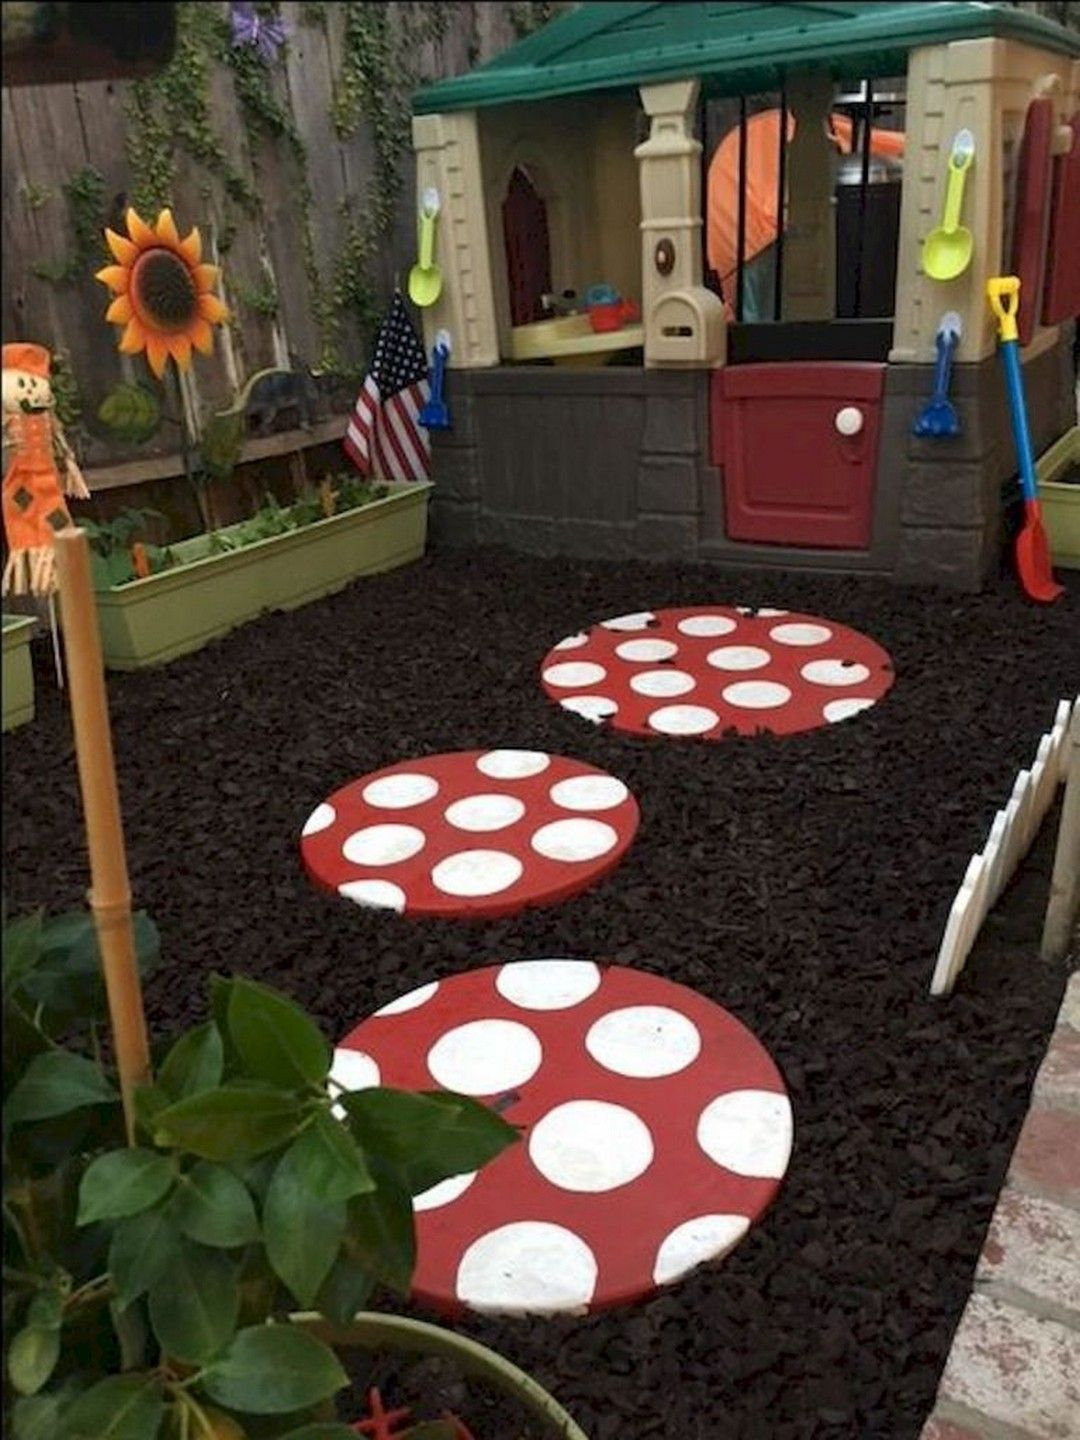 32 Fantastic Backyard Kids Ideas Play Spaces Design Ideas And Remodel #backyardremodel